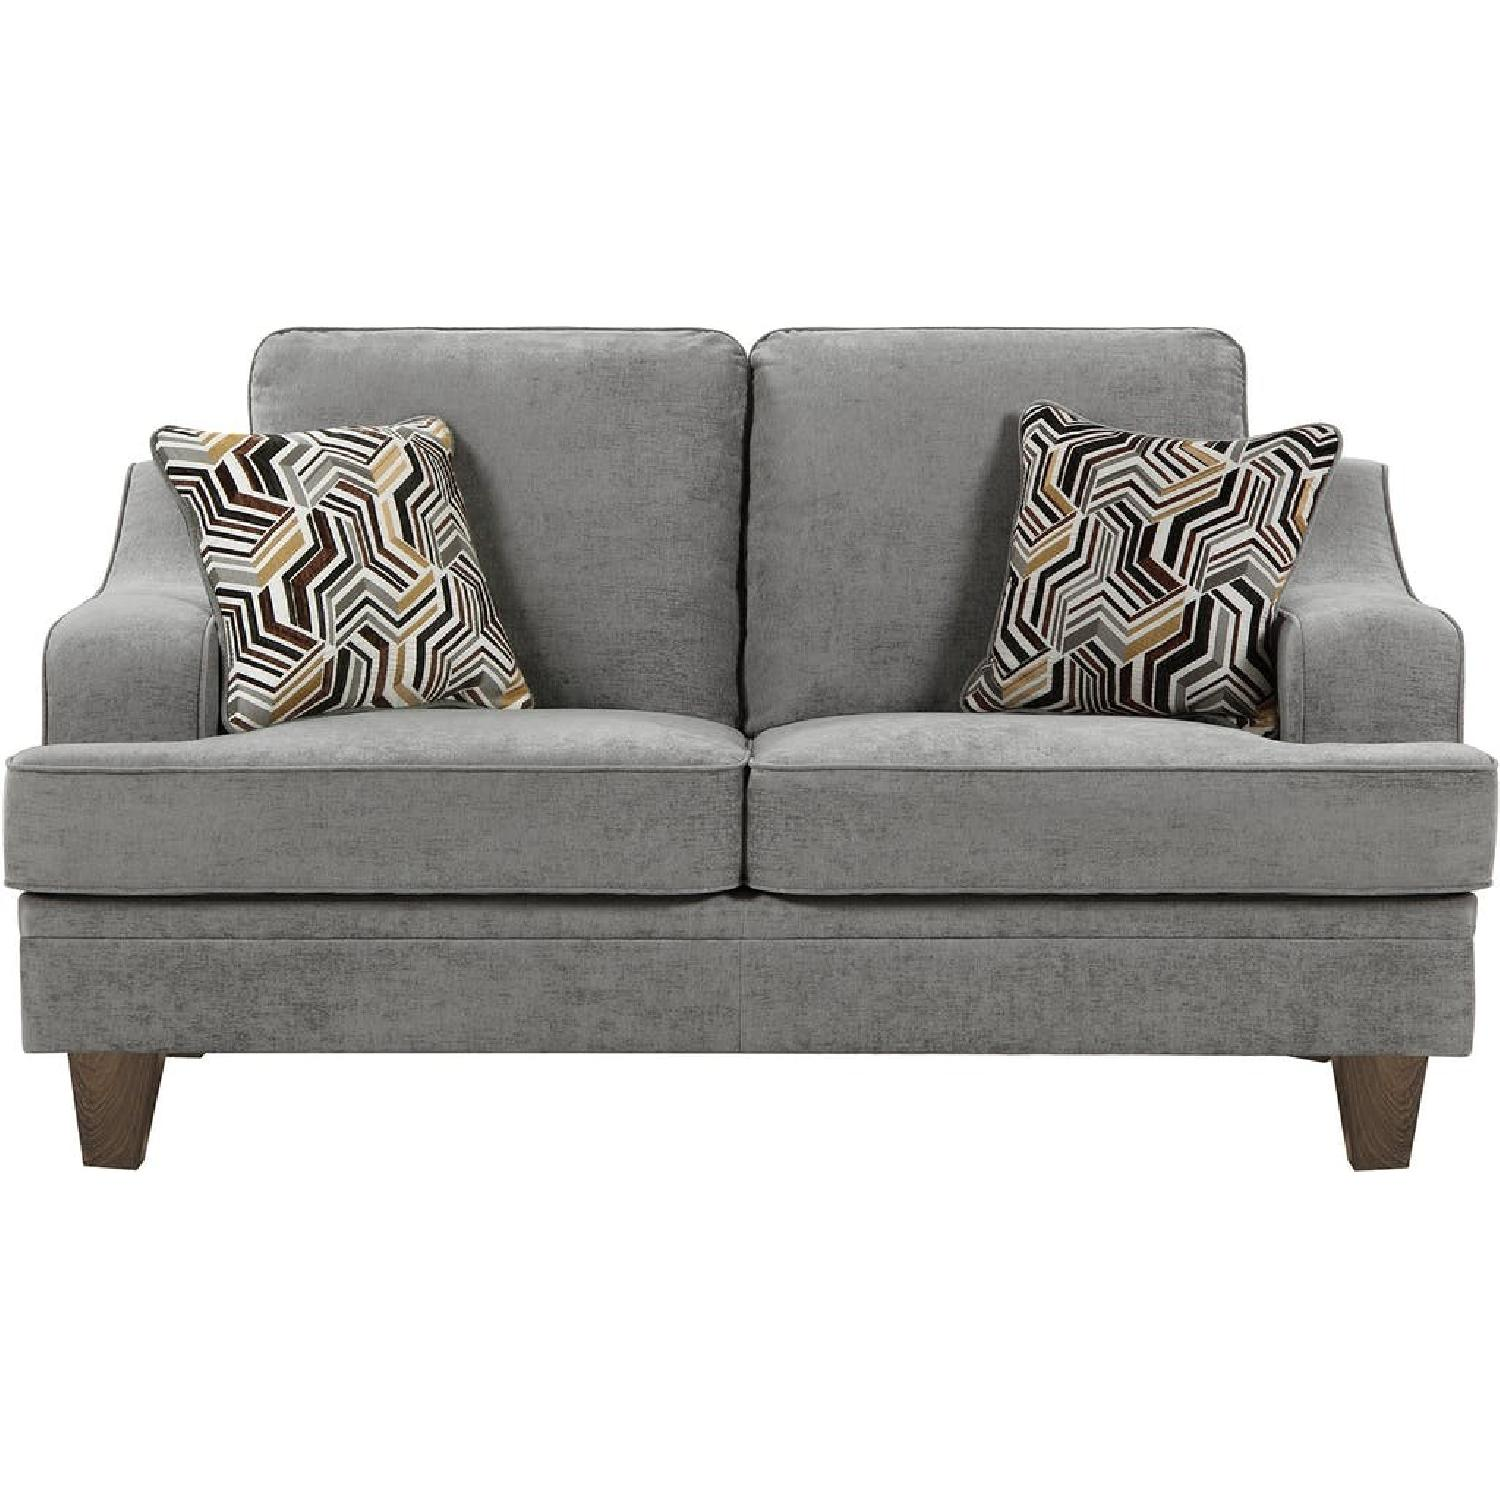 Loveseat in Grey Fabric w/ Sloped Arms